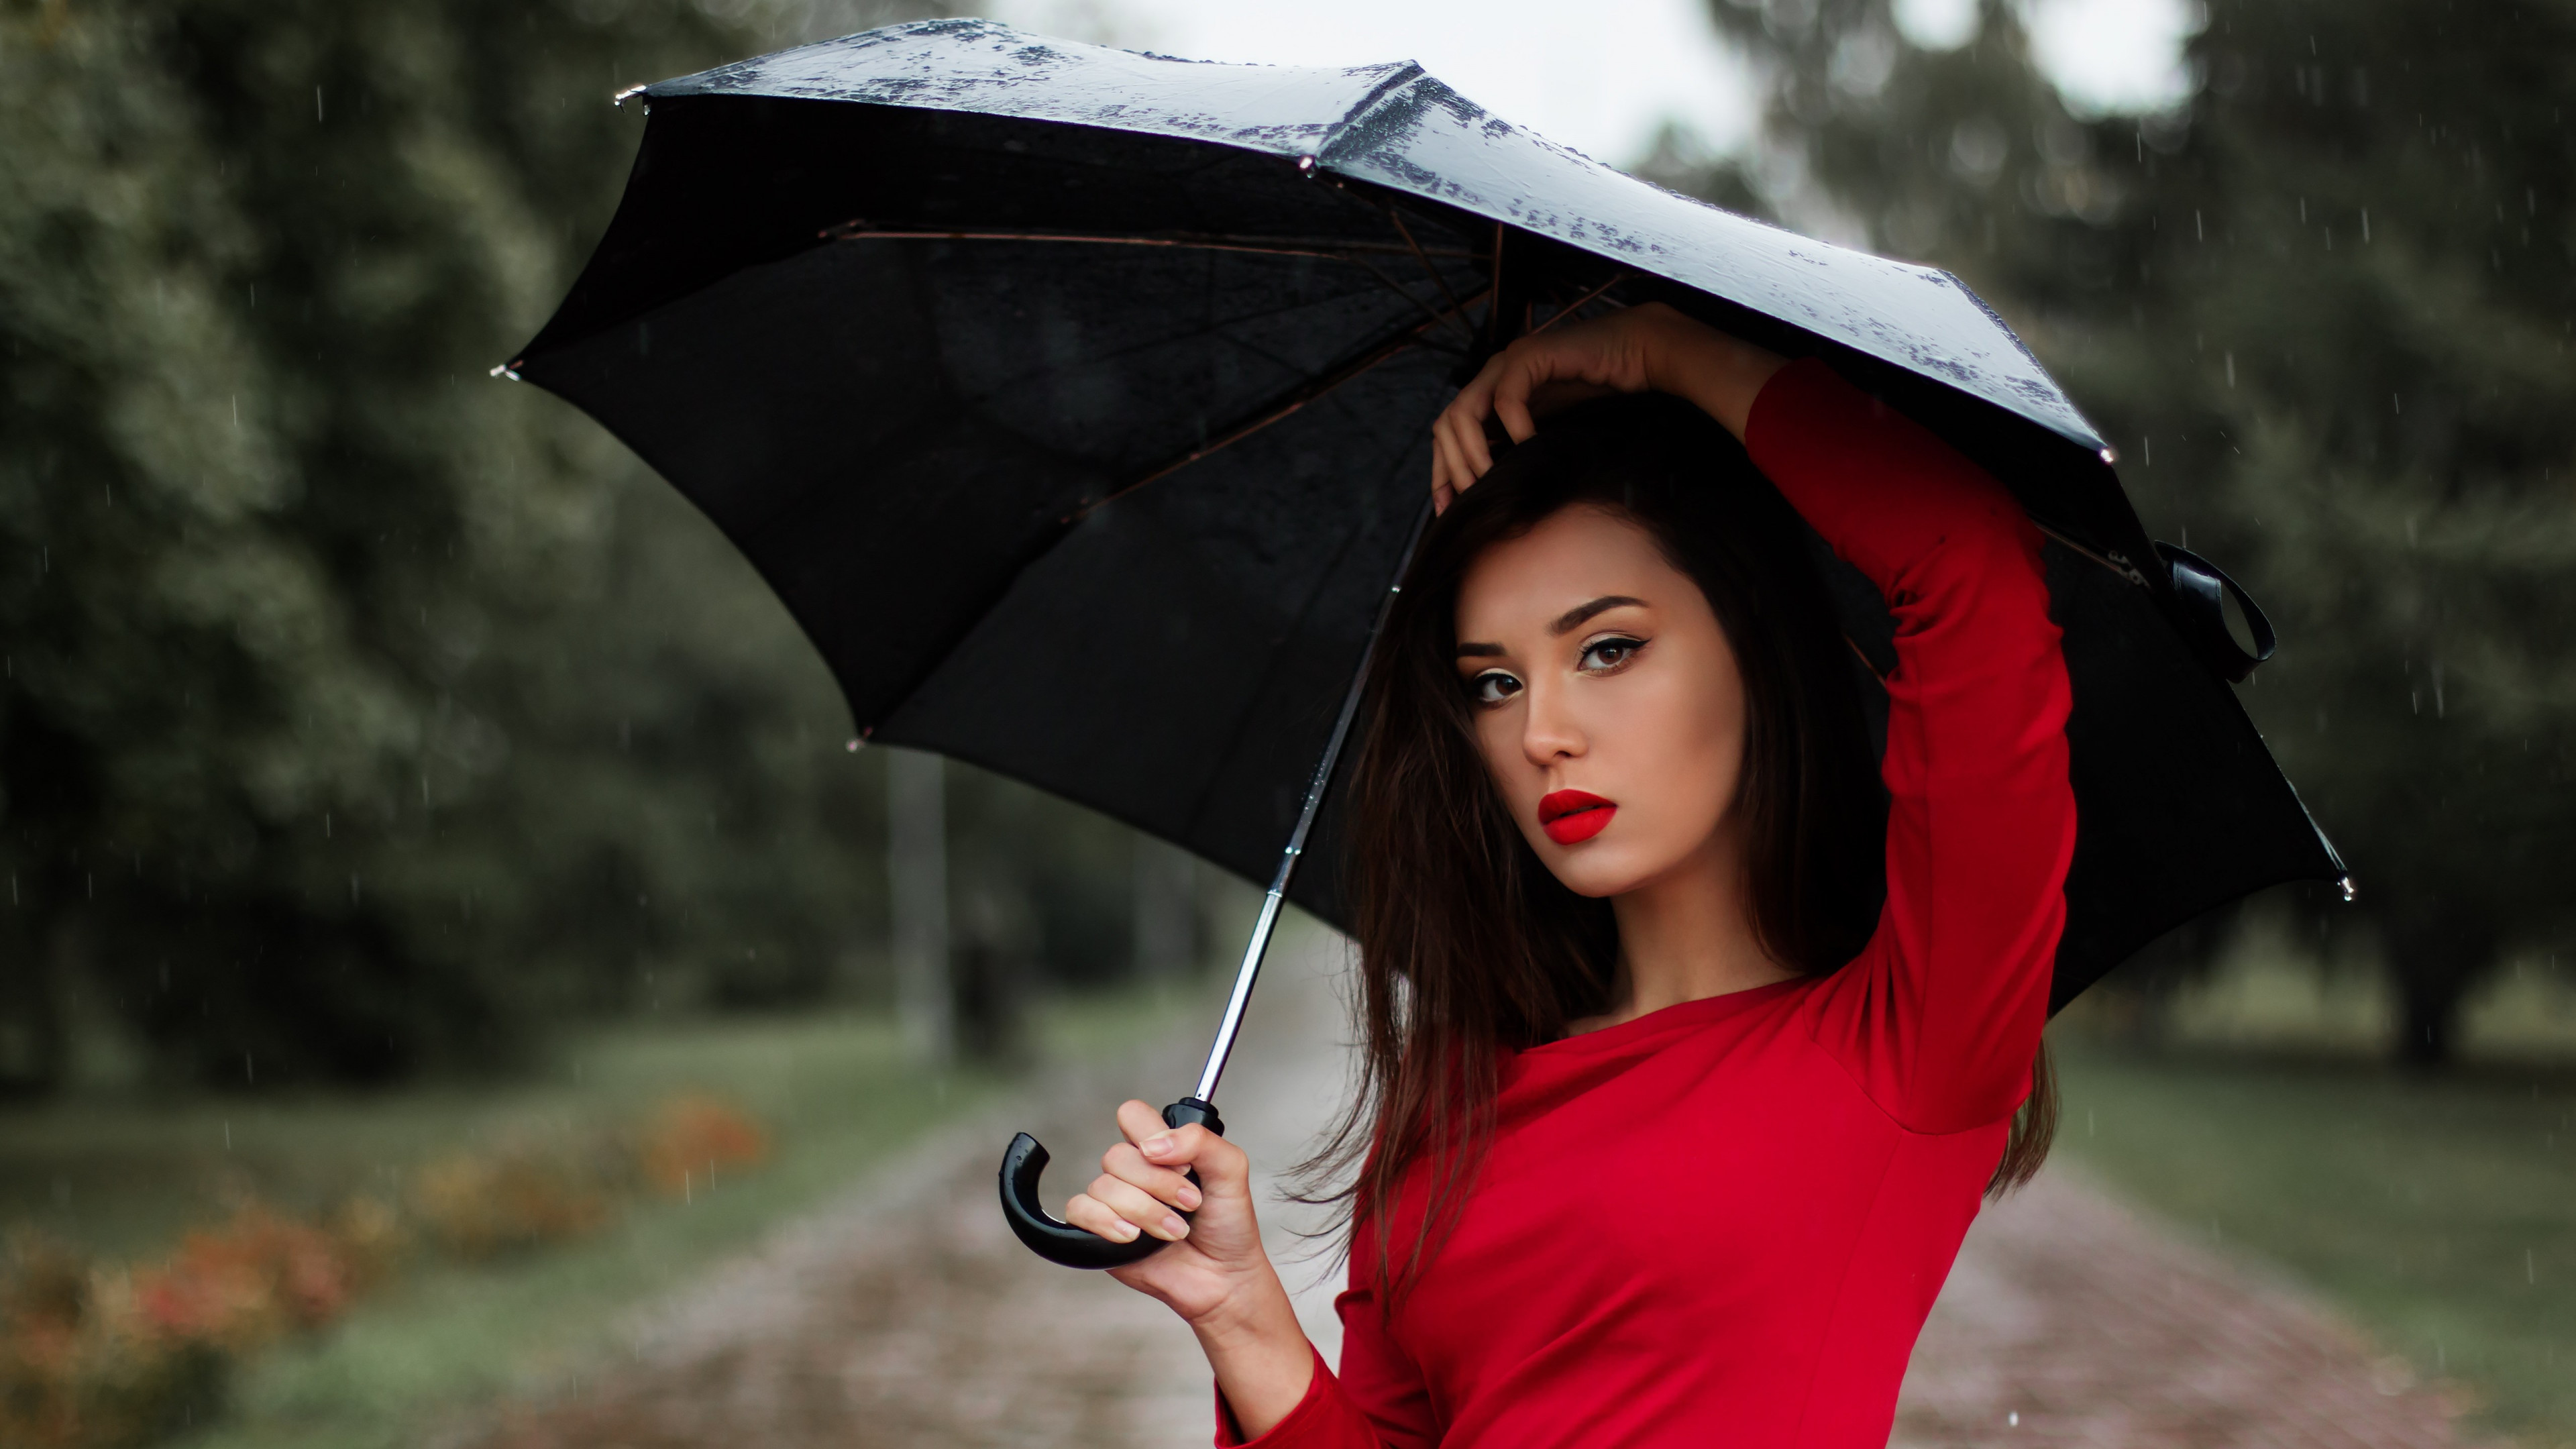 Beauitful girl in a rainy day | 3840x2160 wallpaper